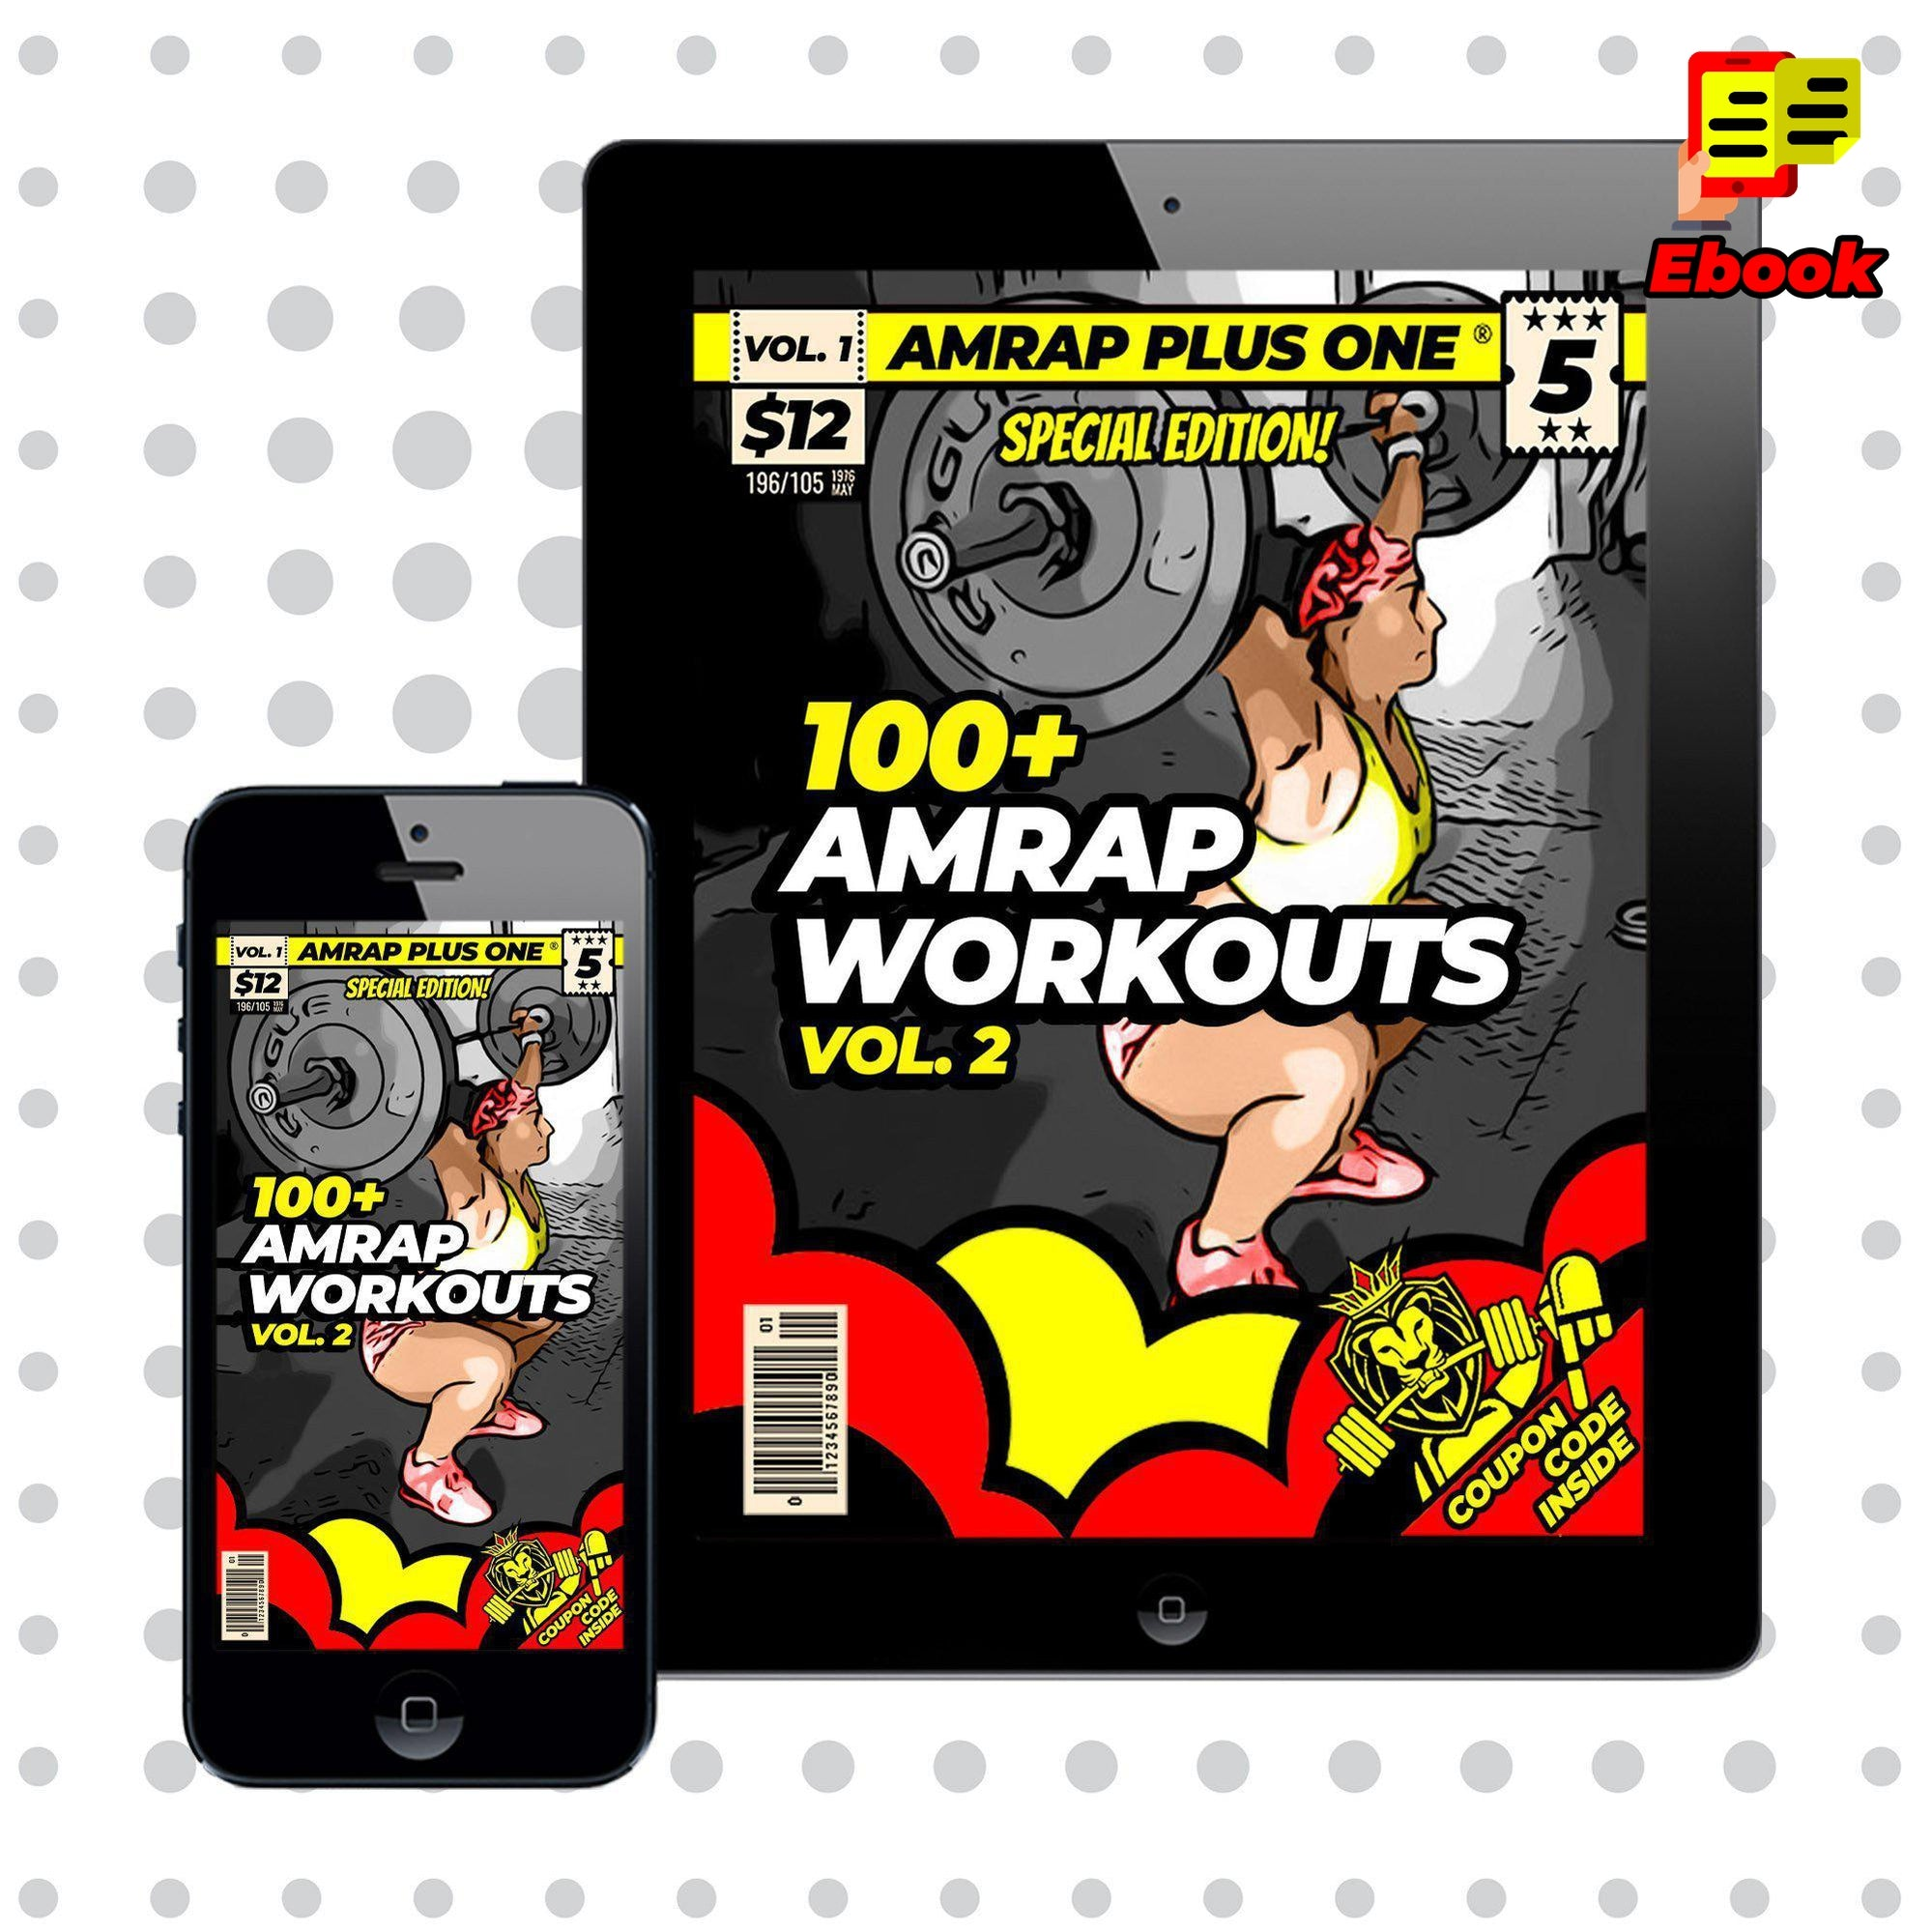 100+ AMRAP Workouts Vol. 2 - AMRAP Plus One